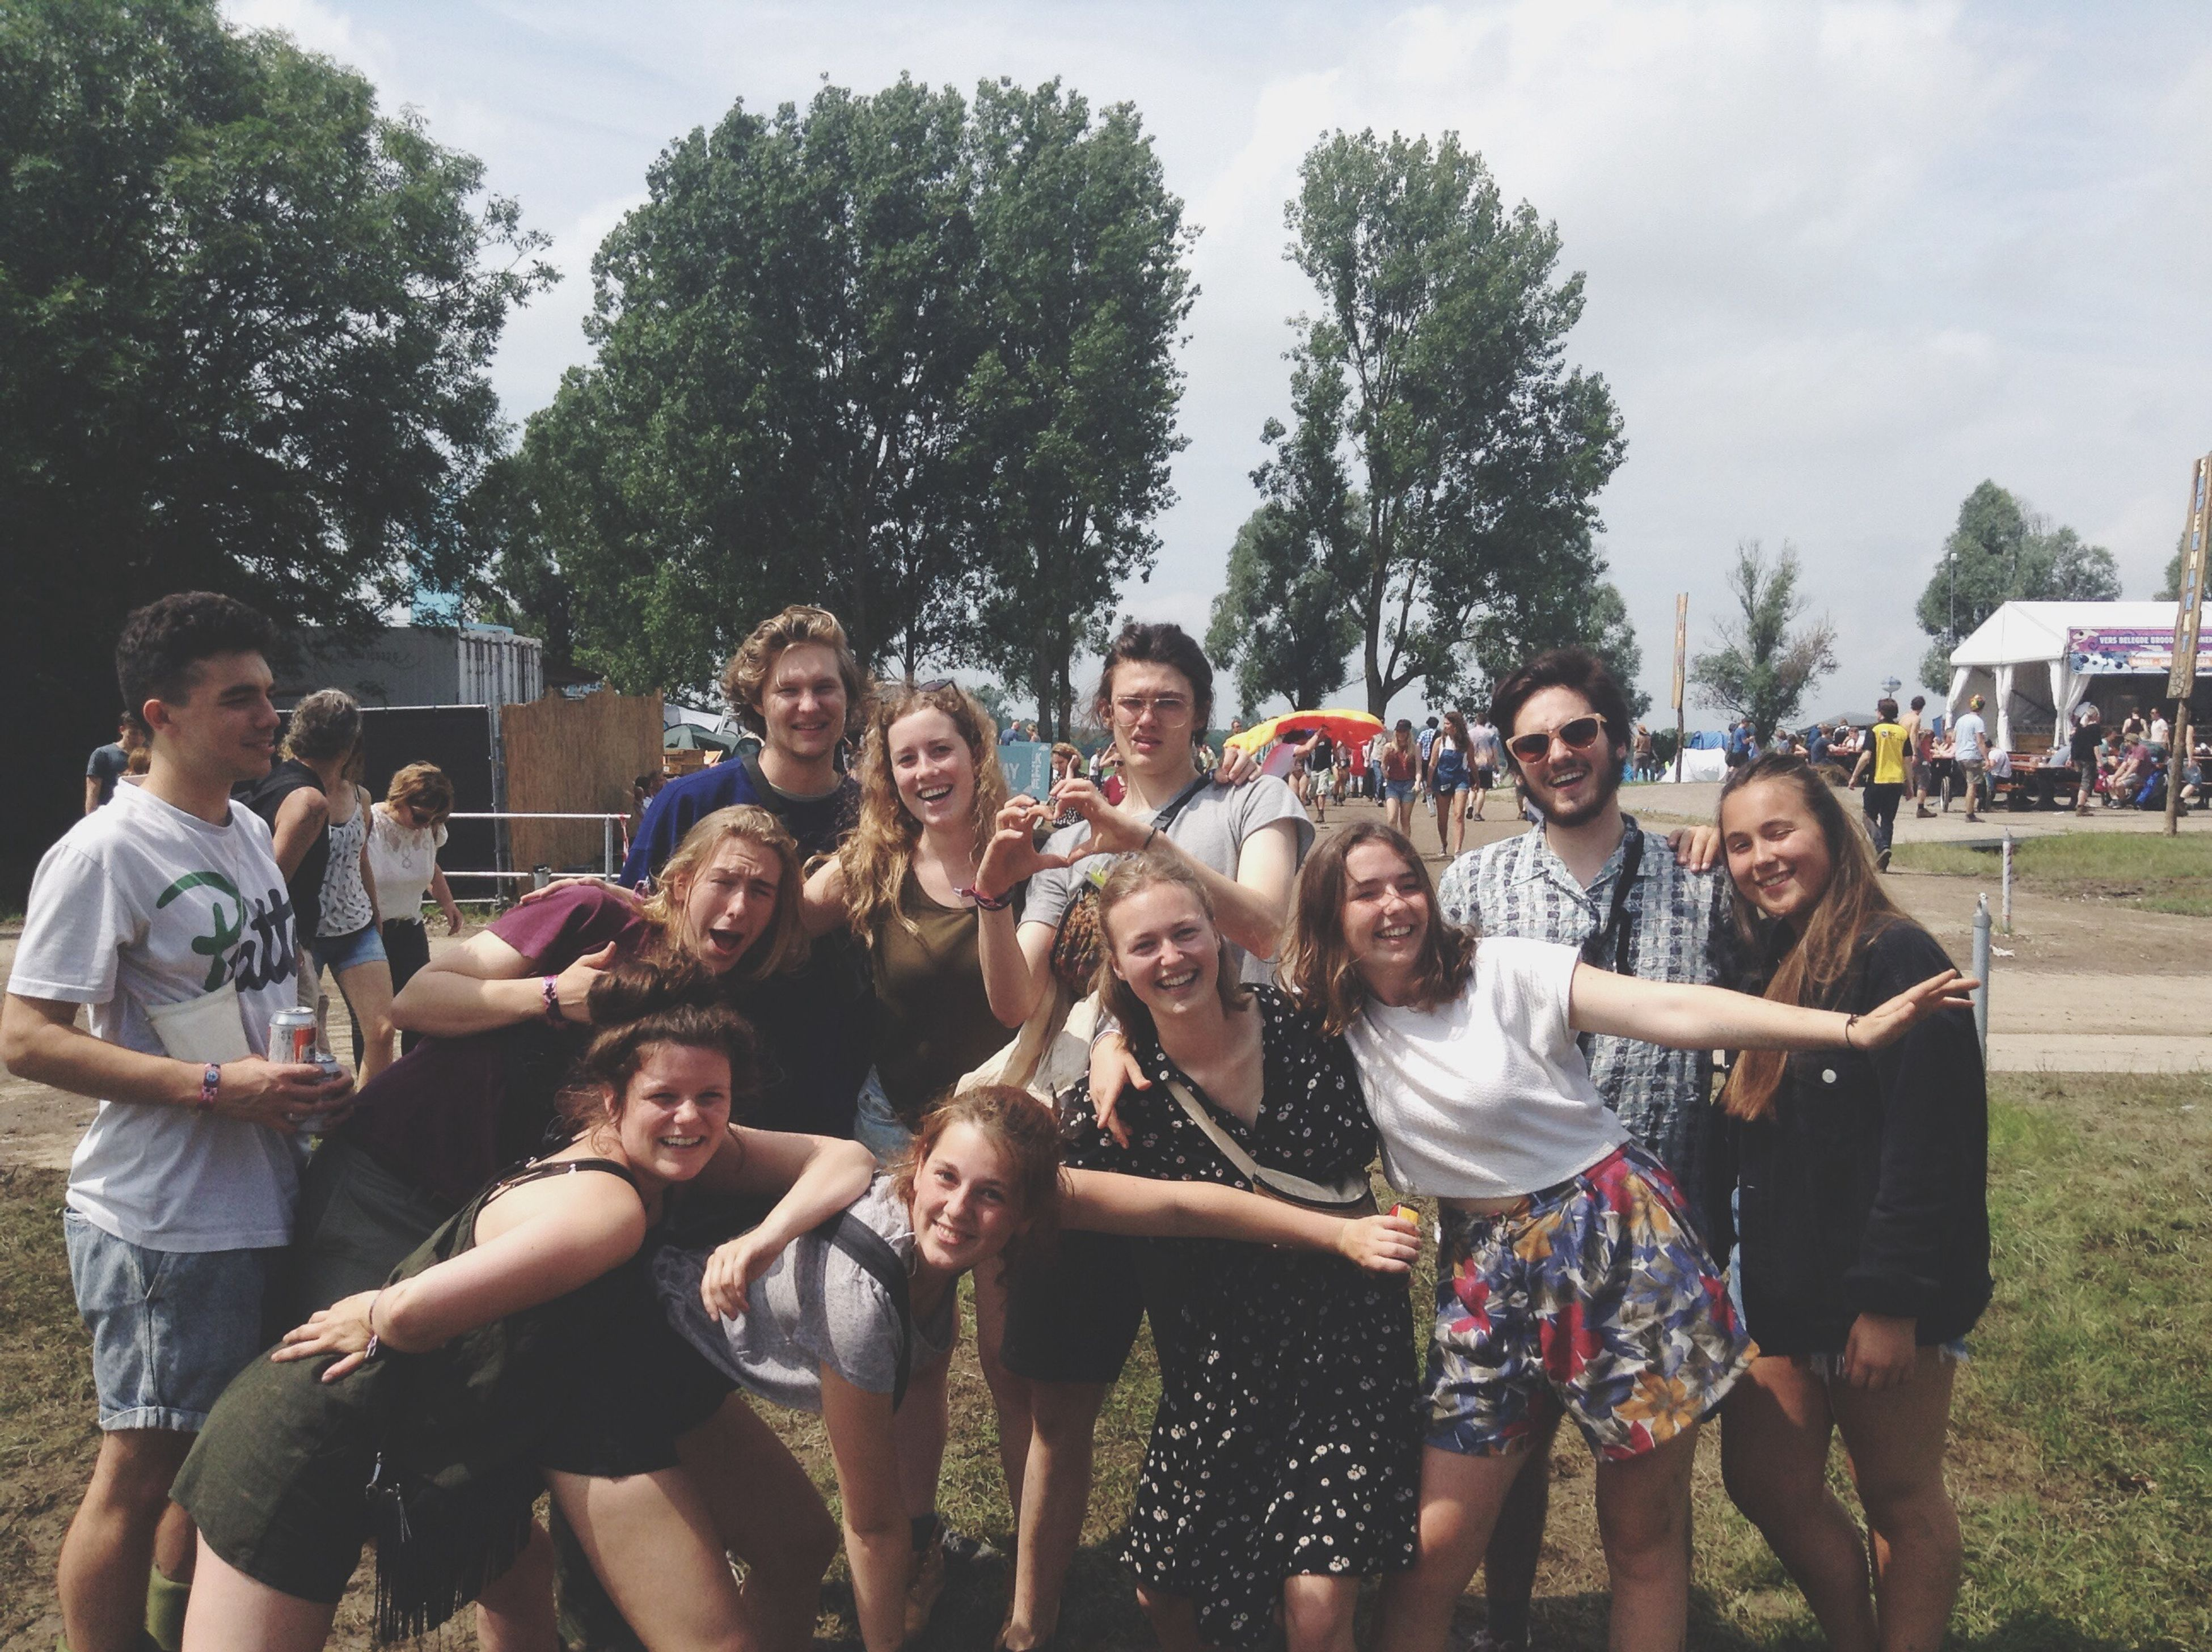 lifestyles, togetherness, leisure activity, casual clothing, bonding, person, friendship, happiness, young adult, love, smiling, enjoyment, tree, young women, large group of people, fun, sitting